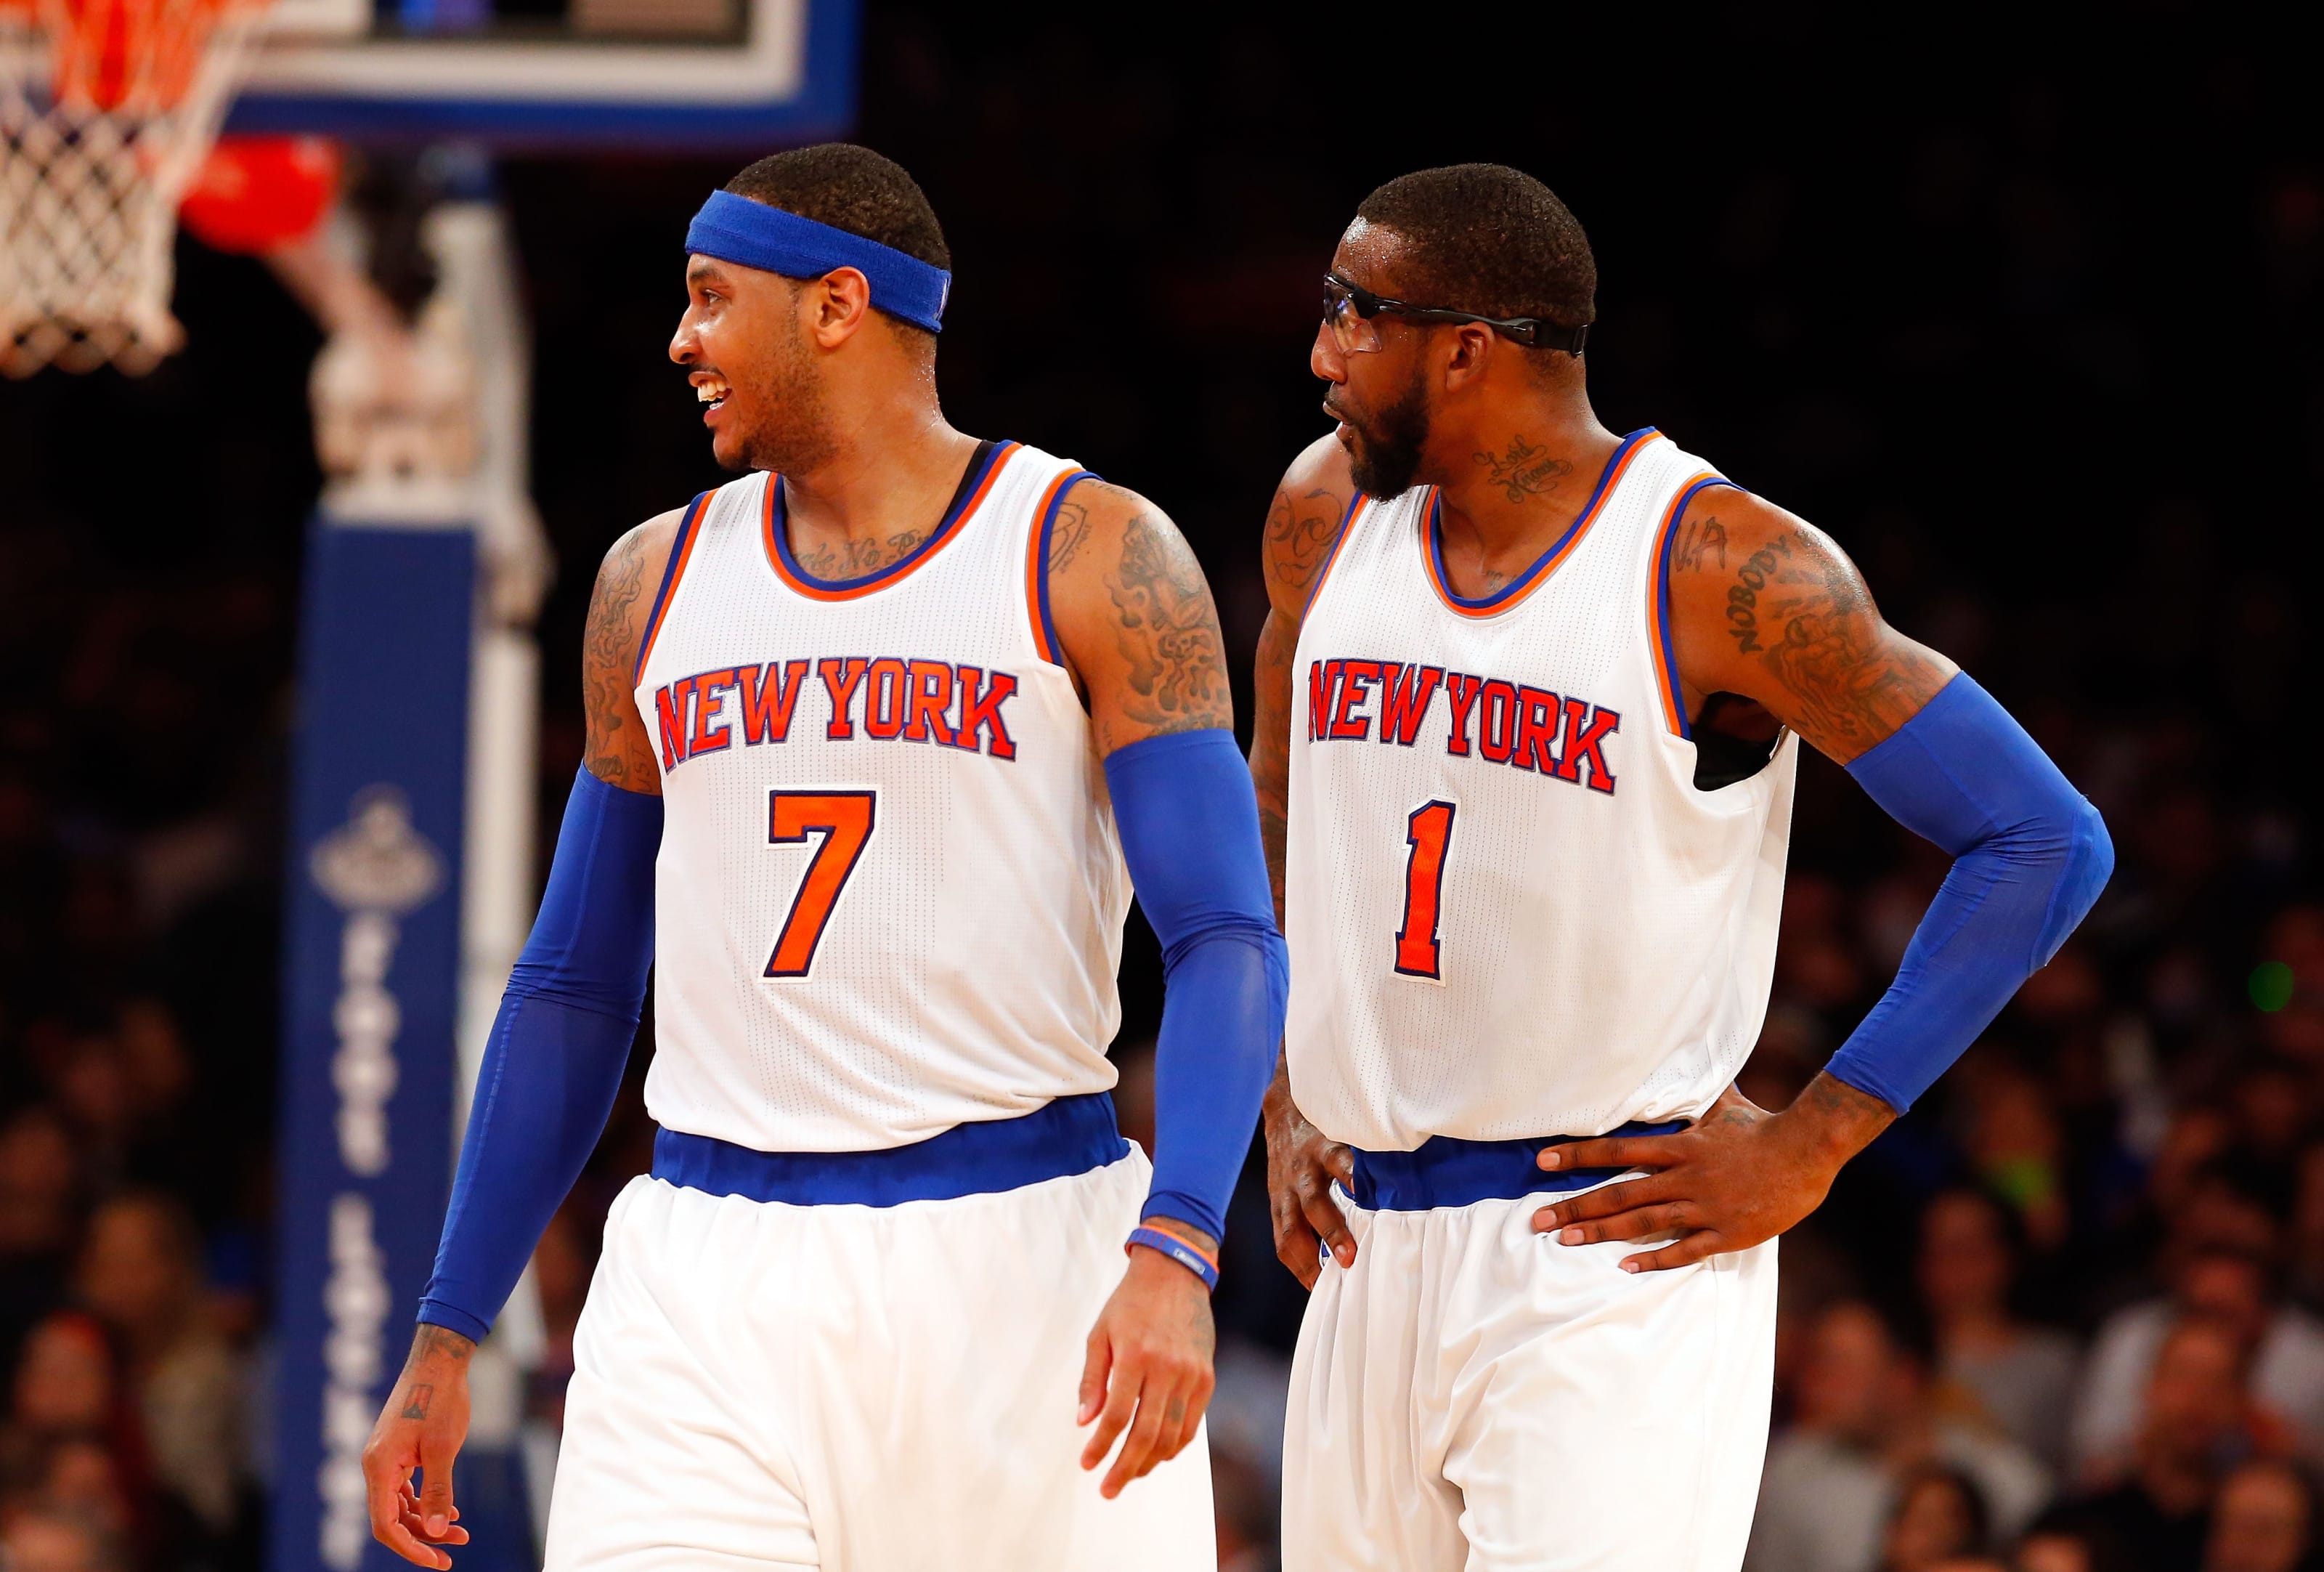 Carmelo Anthony and Amar'e Stoudemire, New York Knicks on 30 Nov. 2014 in New York City.(Photo by Jim McIsaac/Getty Images)